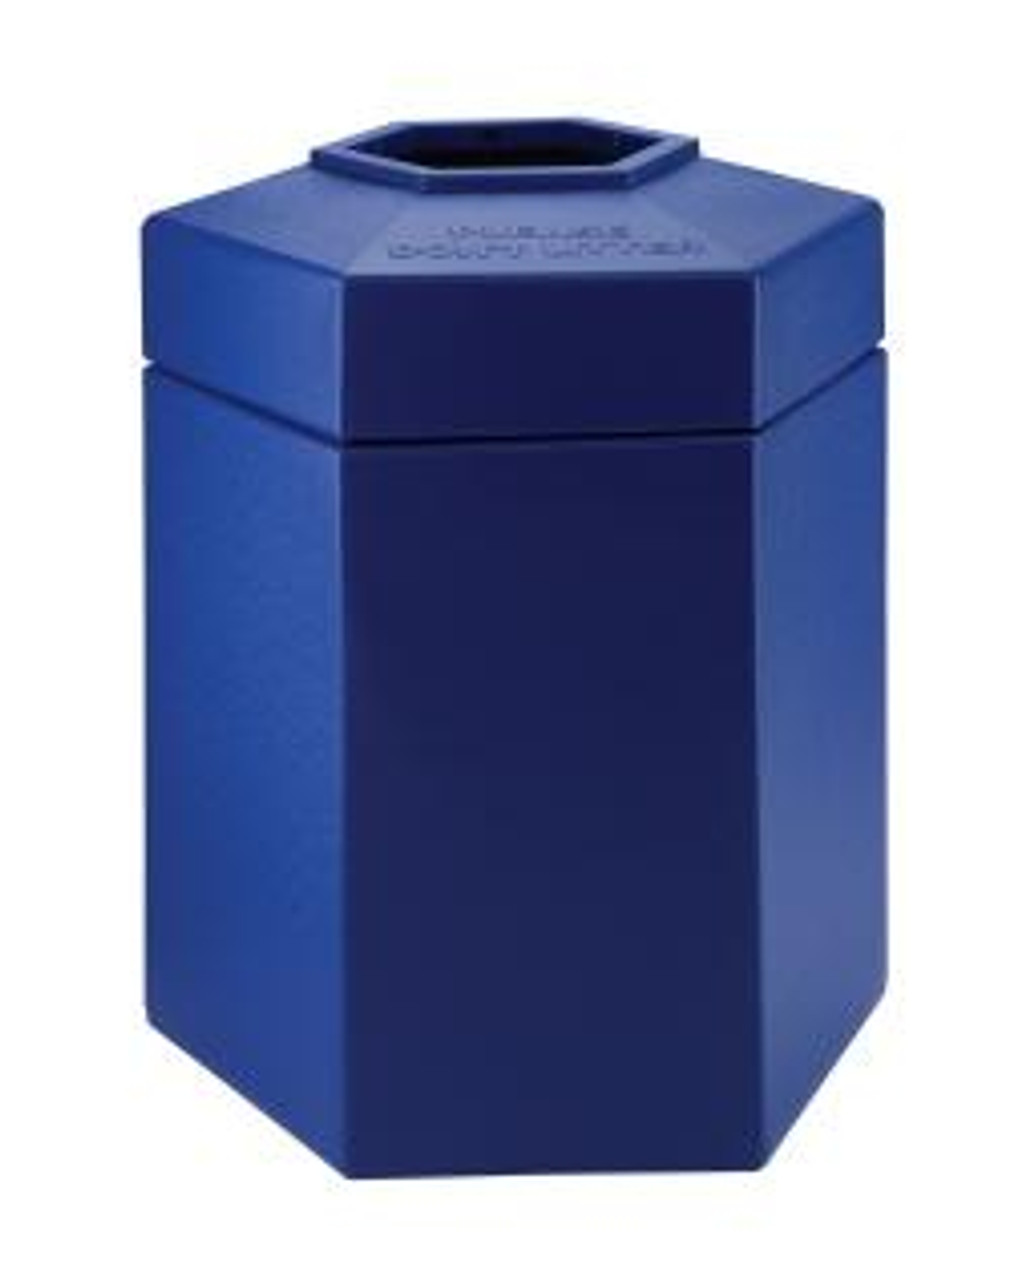 45 Gallon All Season Indoor Outdoor Hexagon Plastic Garbage Can Blue